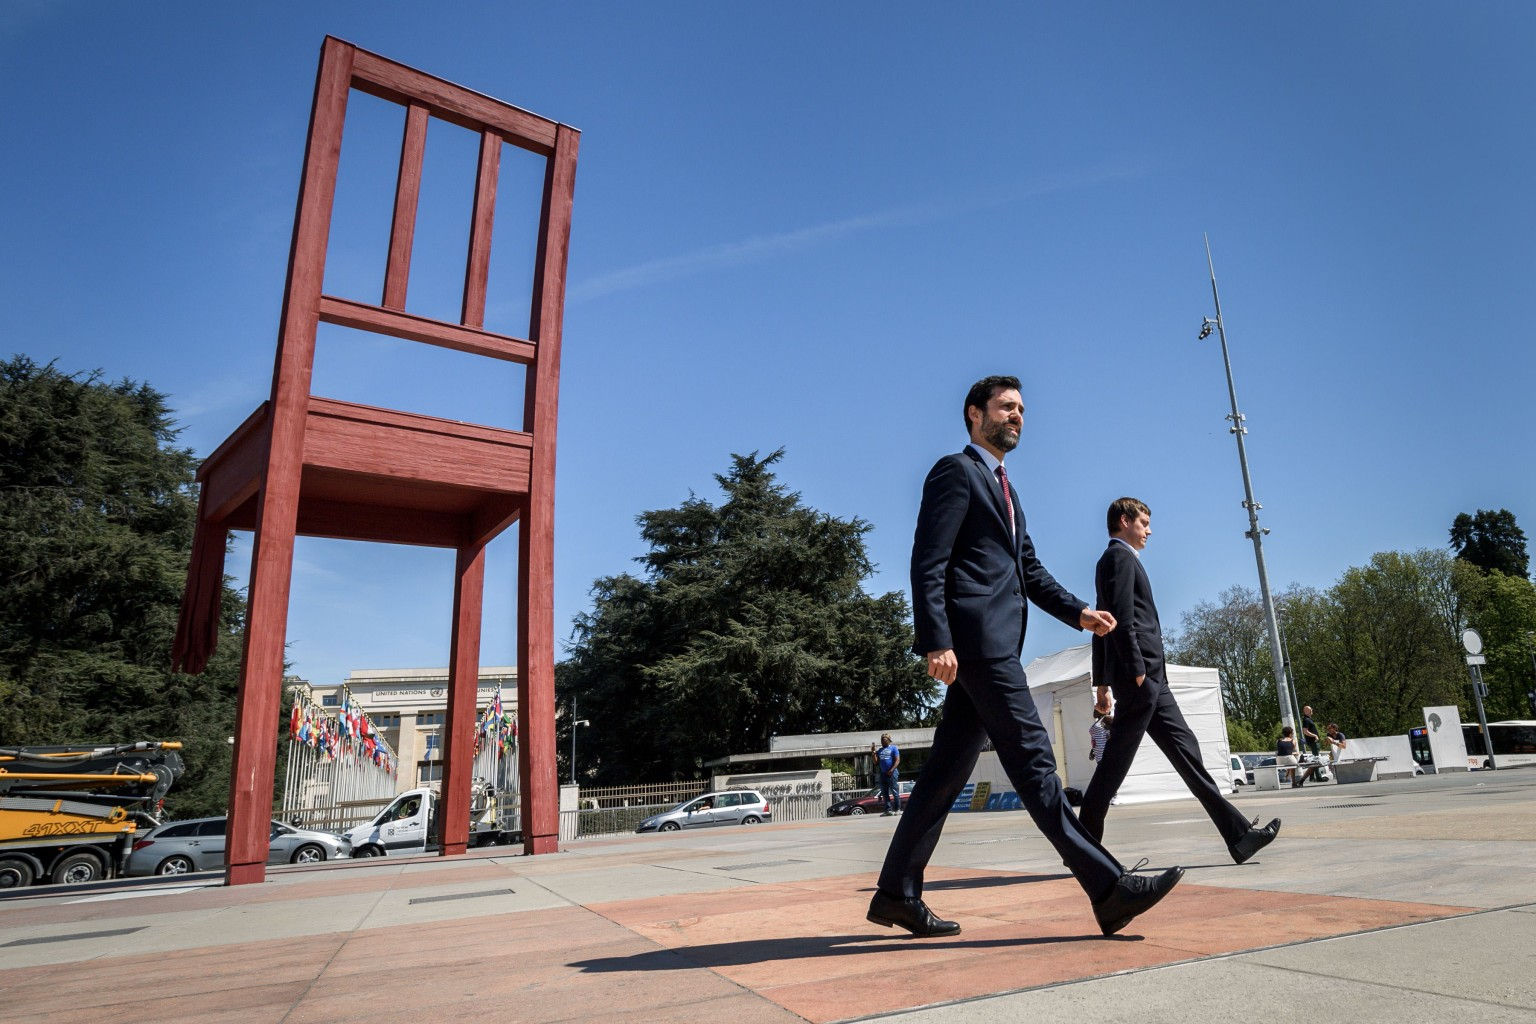 """Catalan Parliament speaker Roger Torrent, left, walks past the Broken Chair sculpture on April 18 as he arrives outside the United Nations offices in Geneva to deliver a statement on the """"violation of fundamental rights"""" in Catalonia. Broken Chair was designed by renowned Swiss sculptor Daniel Berset in 1997 at the request of Handicap International. FABRICE COFFRINI/AFP/Getty Images"""